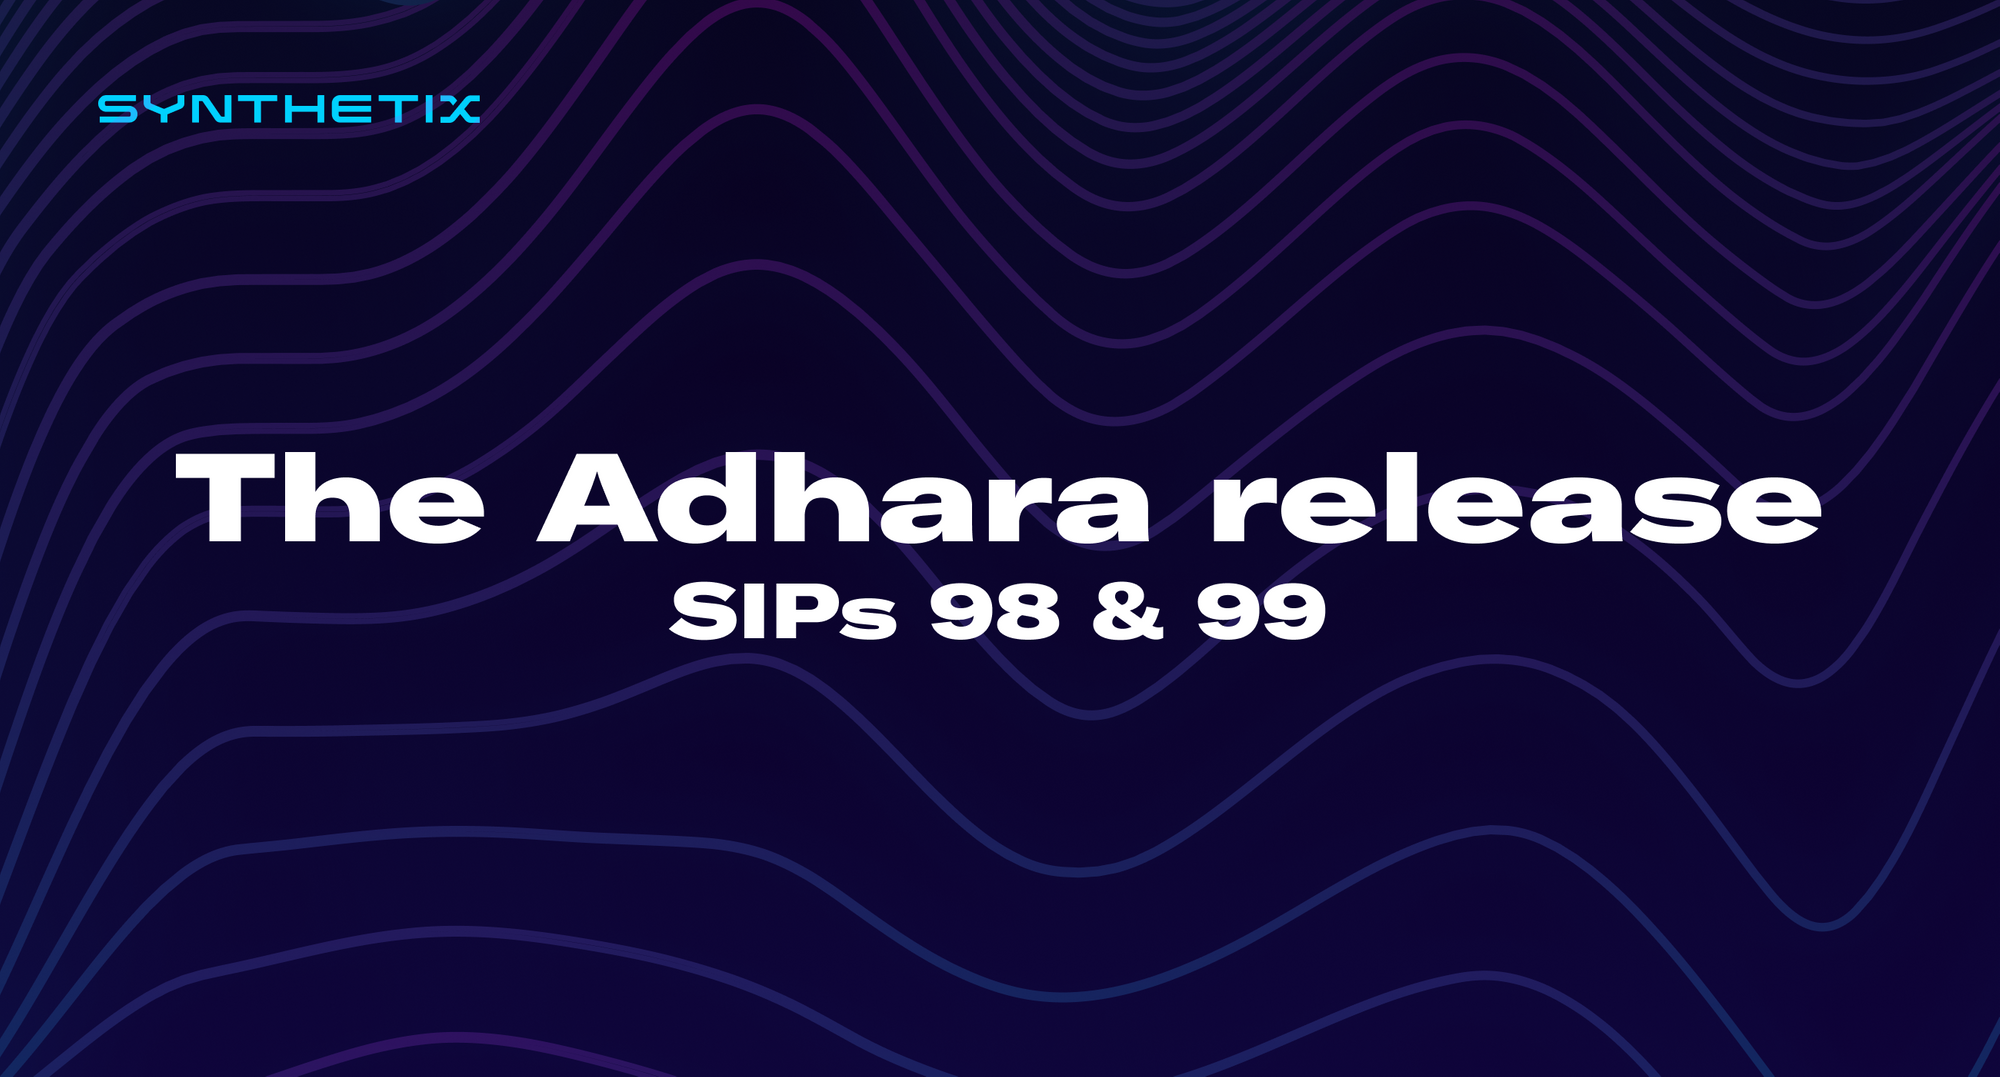 The Adhara release